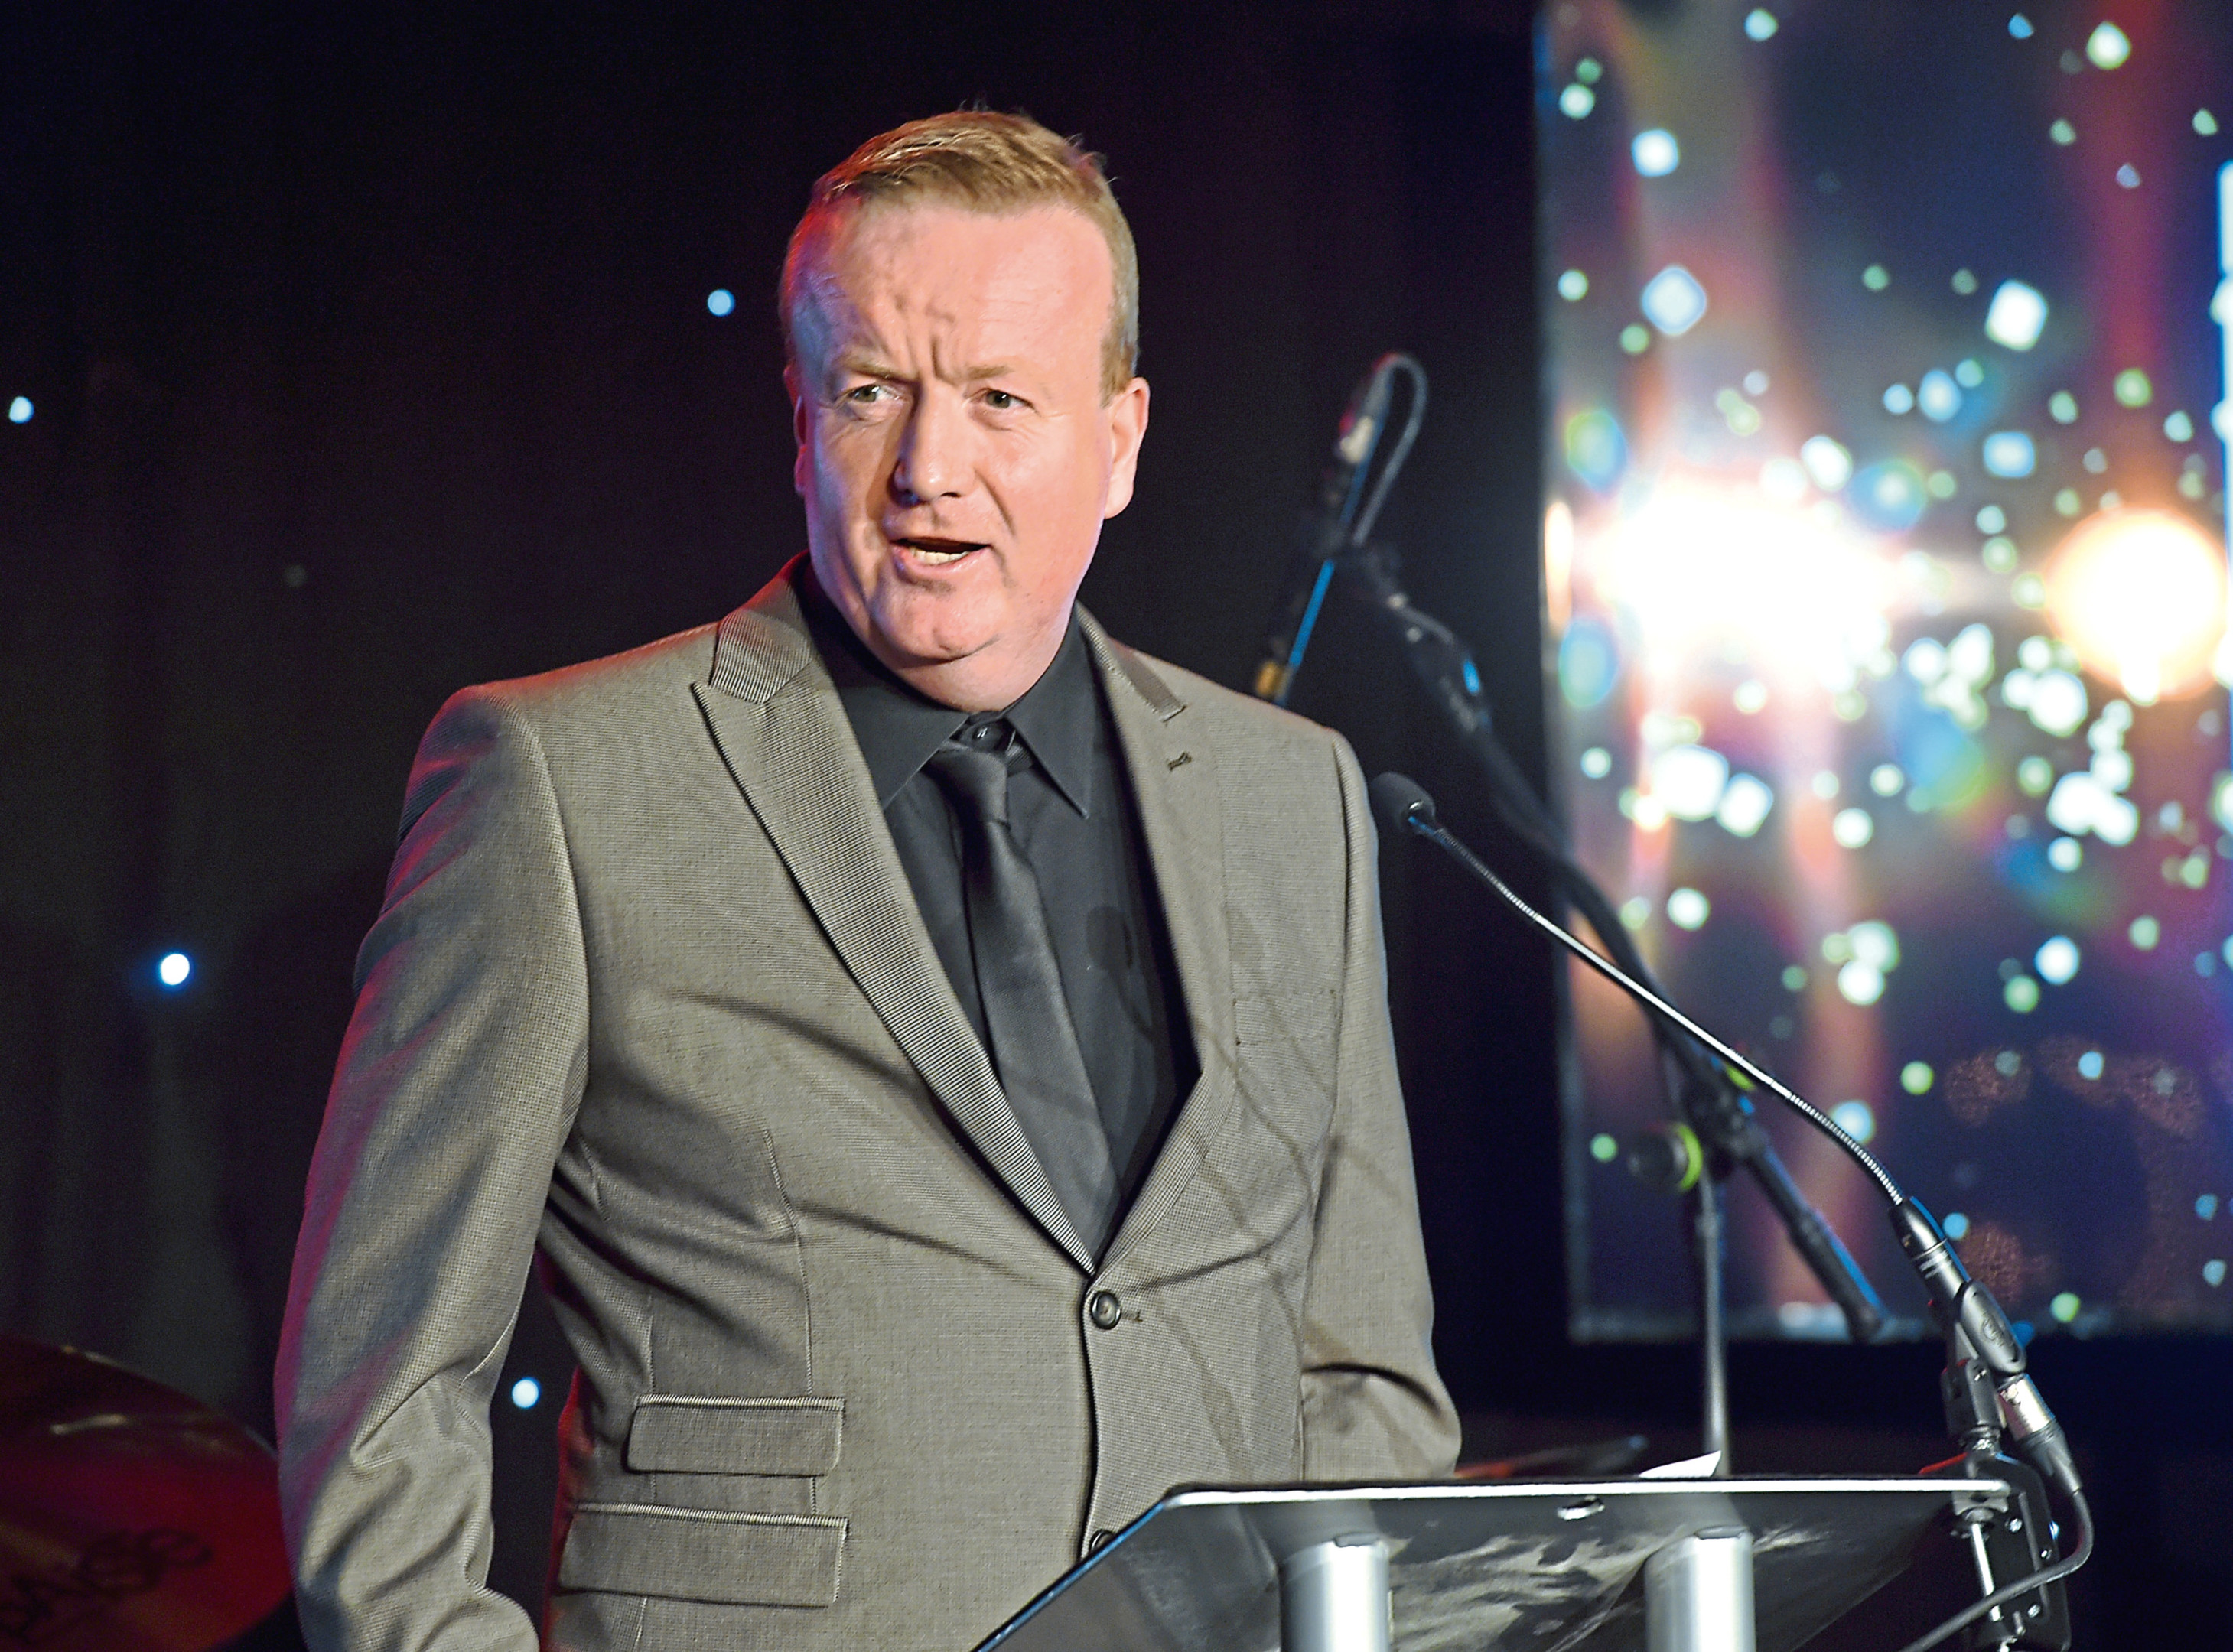 Aberdeen Inspired's Adrian Watson is on the judging panel